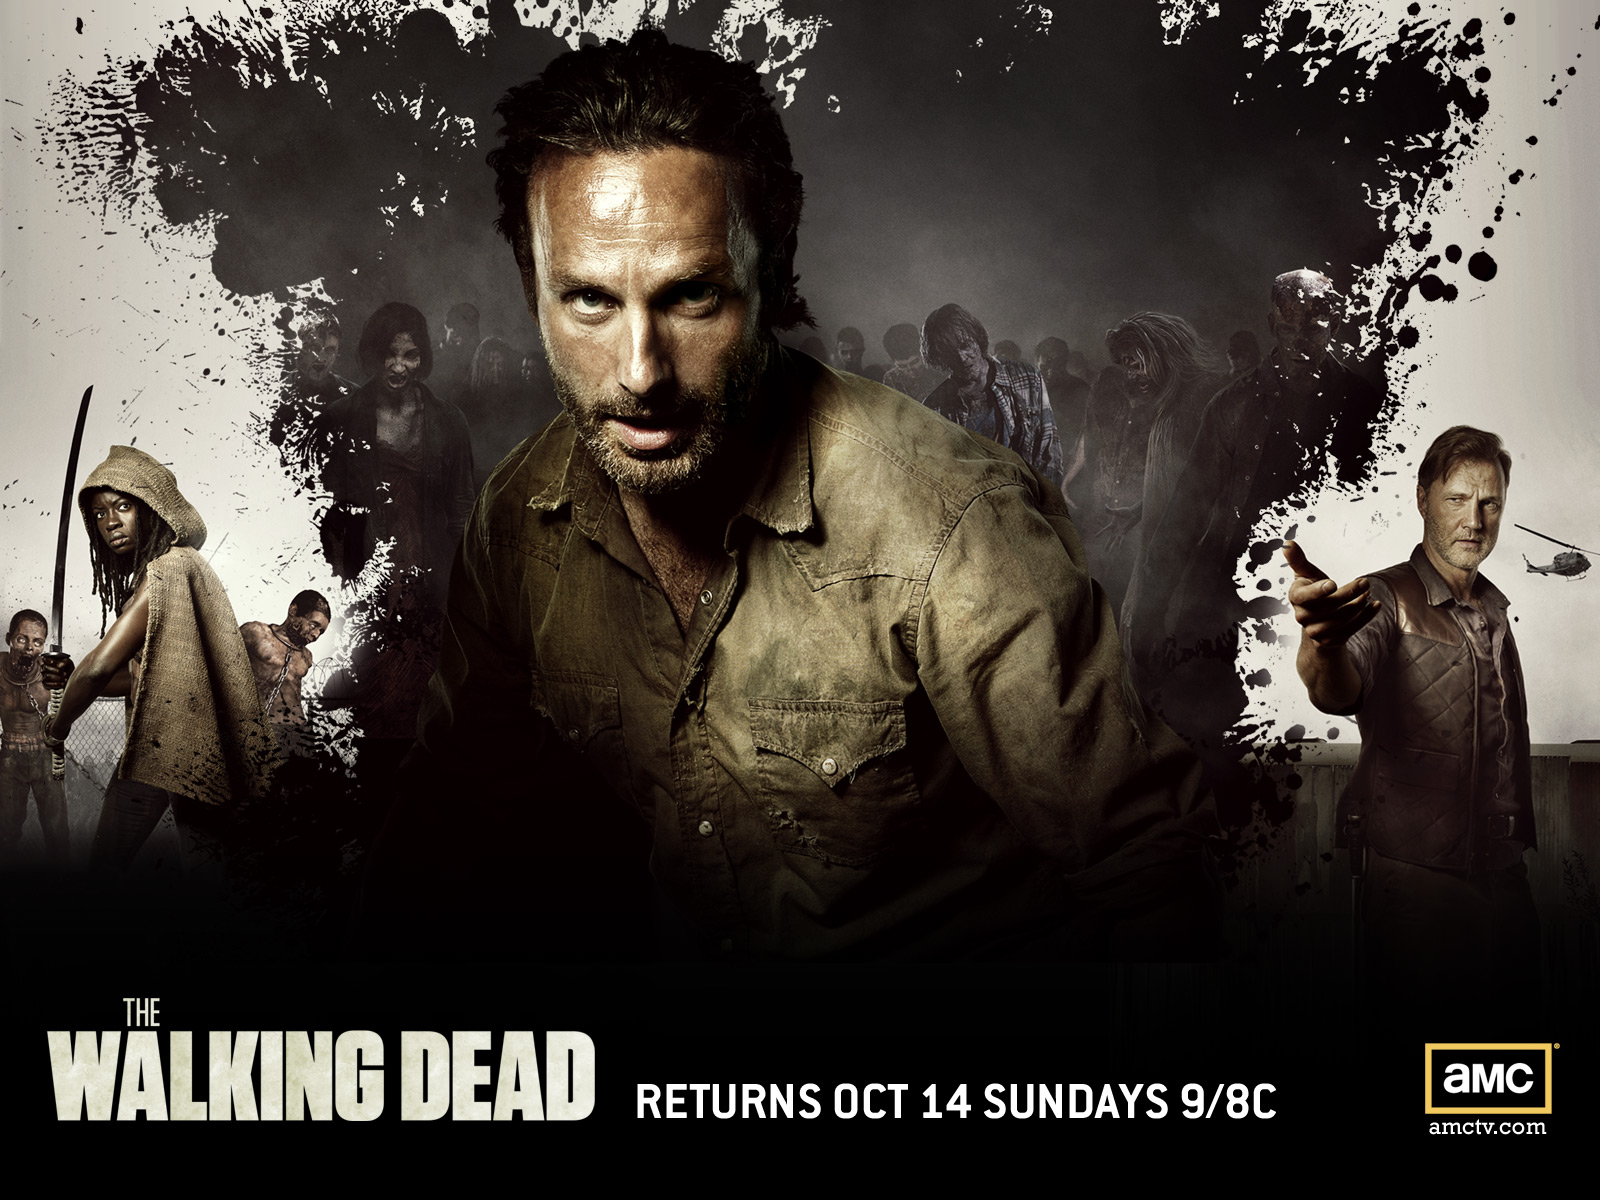 http://3.bp.blogspot.com/-2yc3yU8lXjE/UGl3vFABfqI/AAAAAAAAVCA/tgP-Wf0KLII/s1600/The-walking-dead-s3-Wallpapers-2-1600-A.jpg